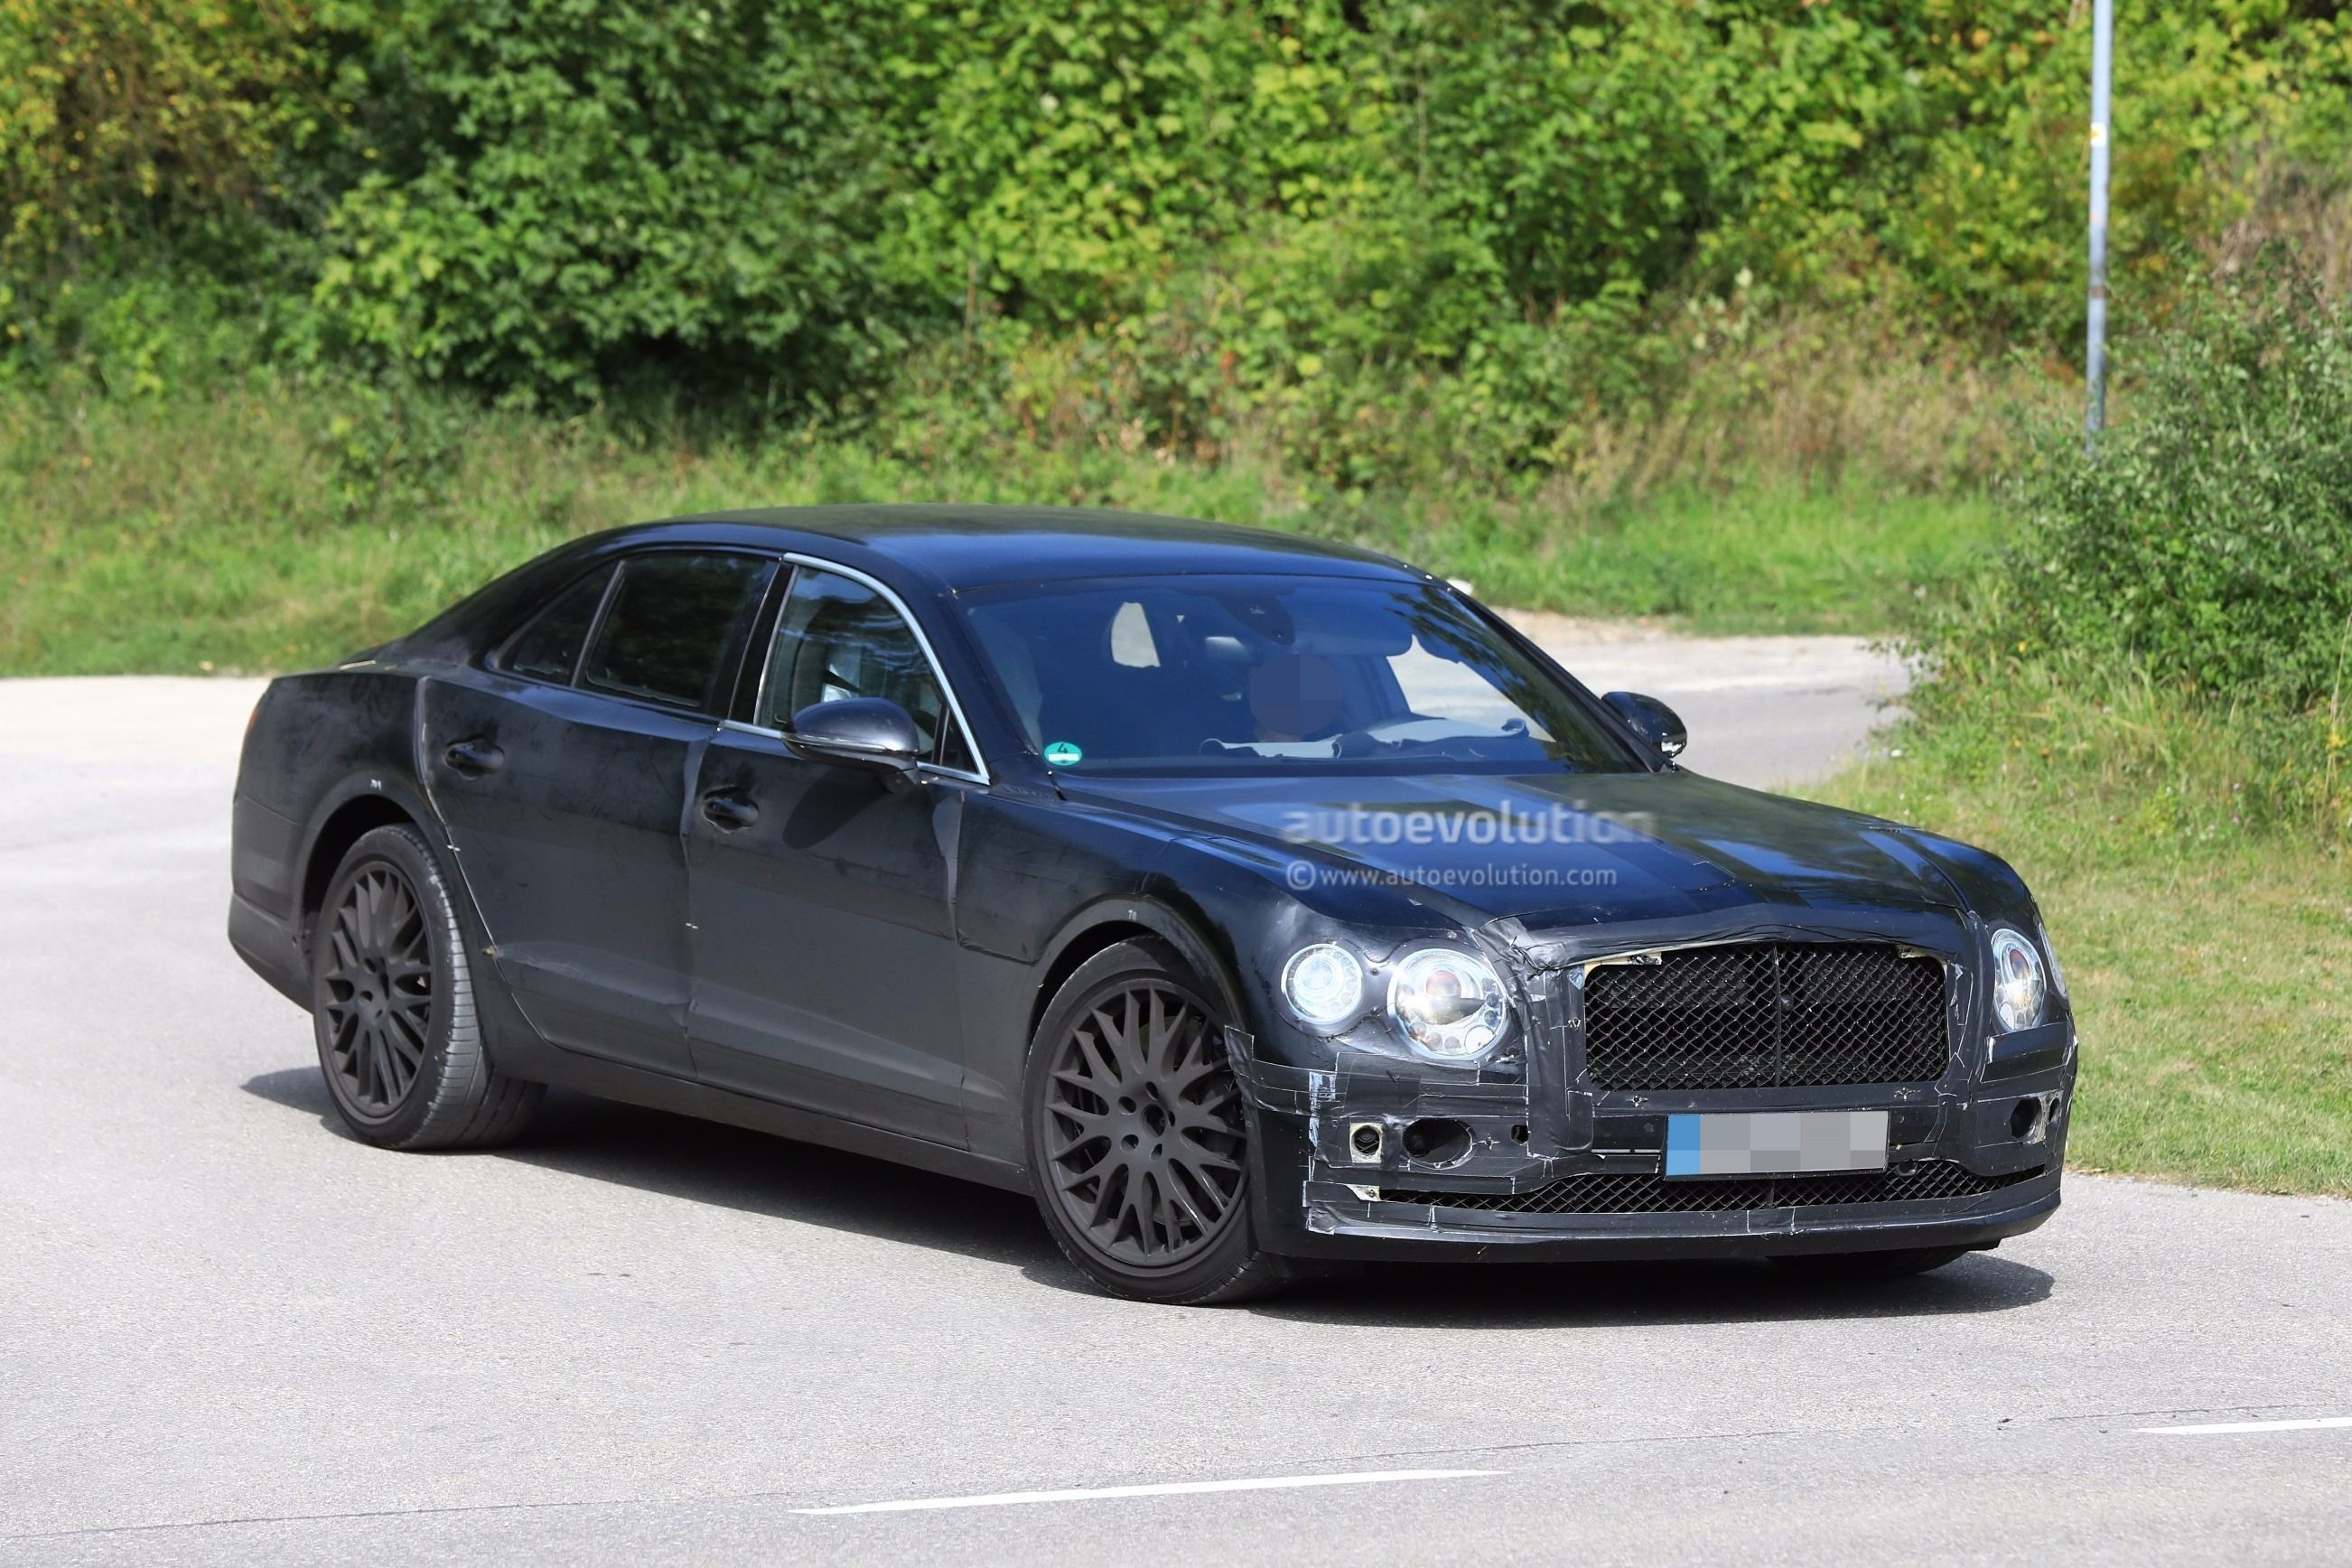 2019 bentley flying spur spied testing with a headless dummy as passenger autoevolution. Black Bedroom Furniture Sets. Home Design Ideas